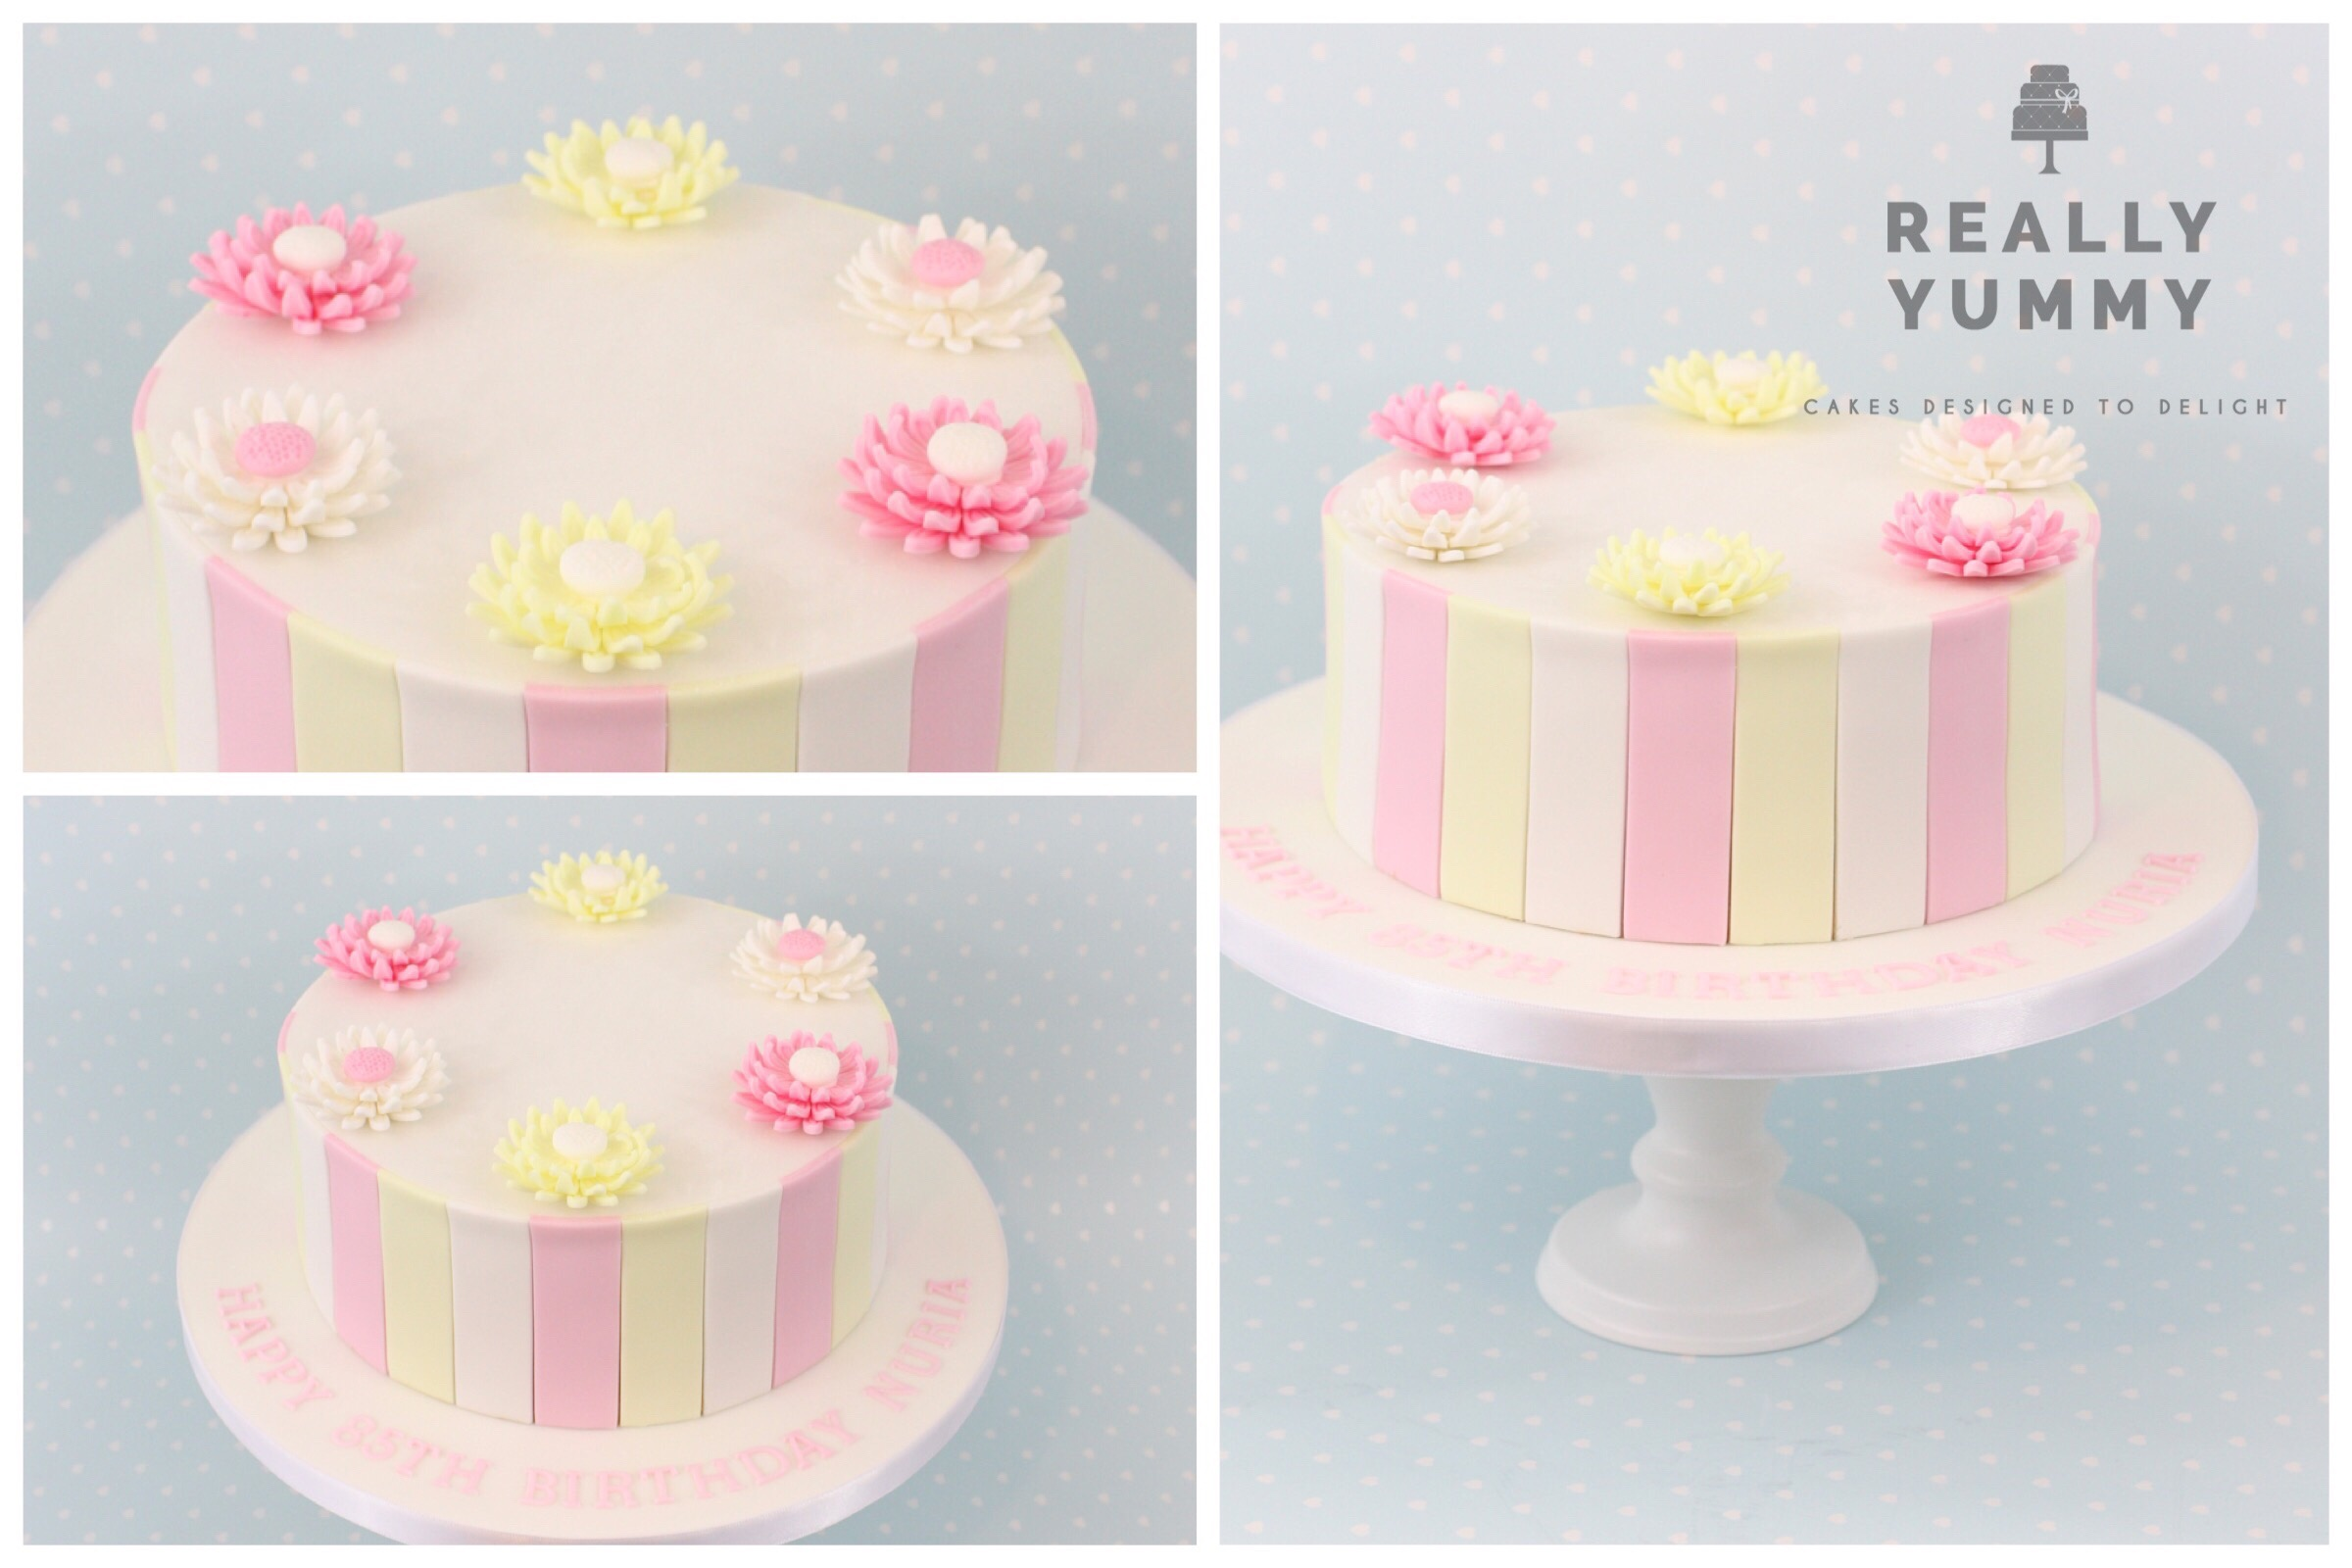 Stripes and flowers in pink and yellow cake